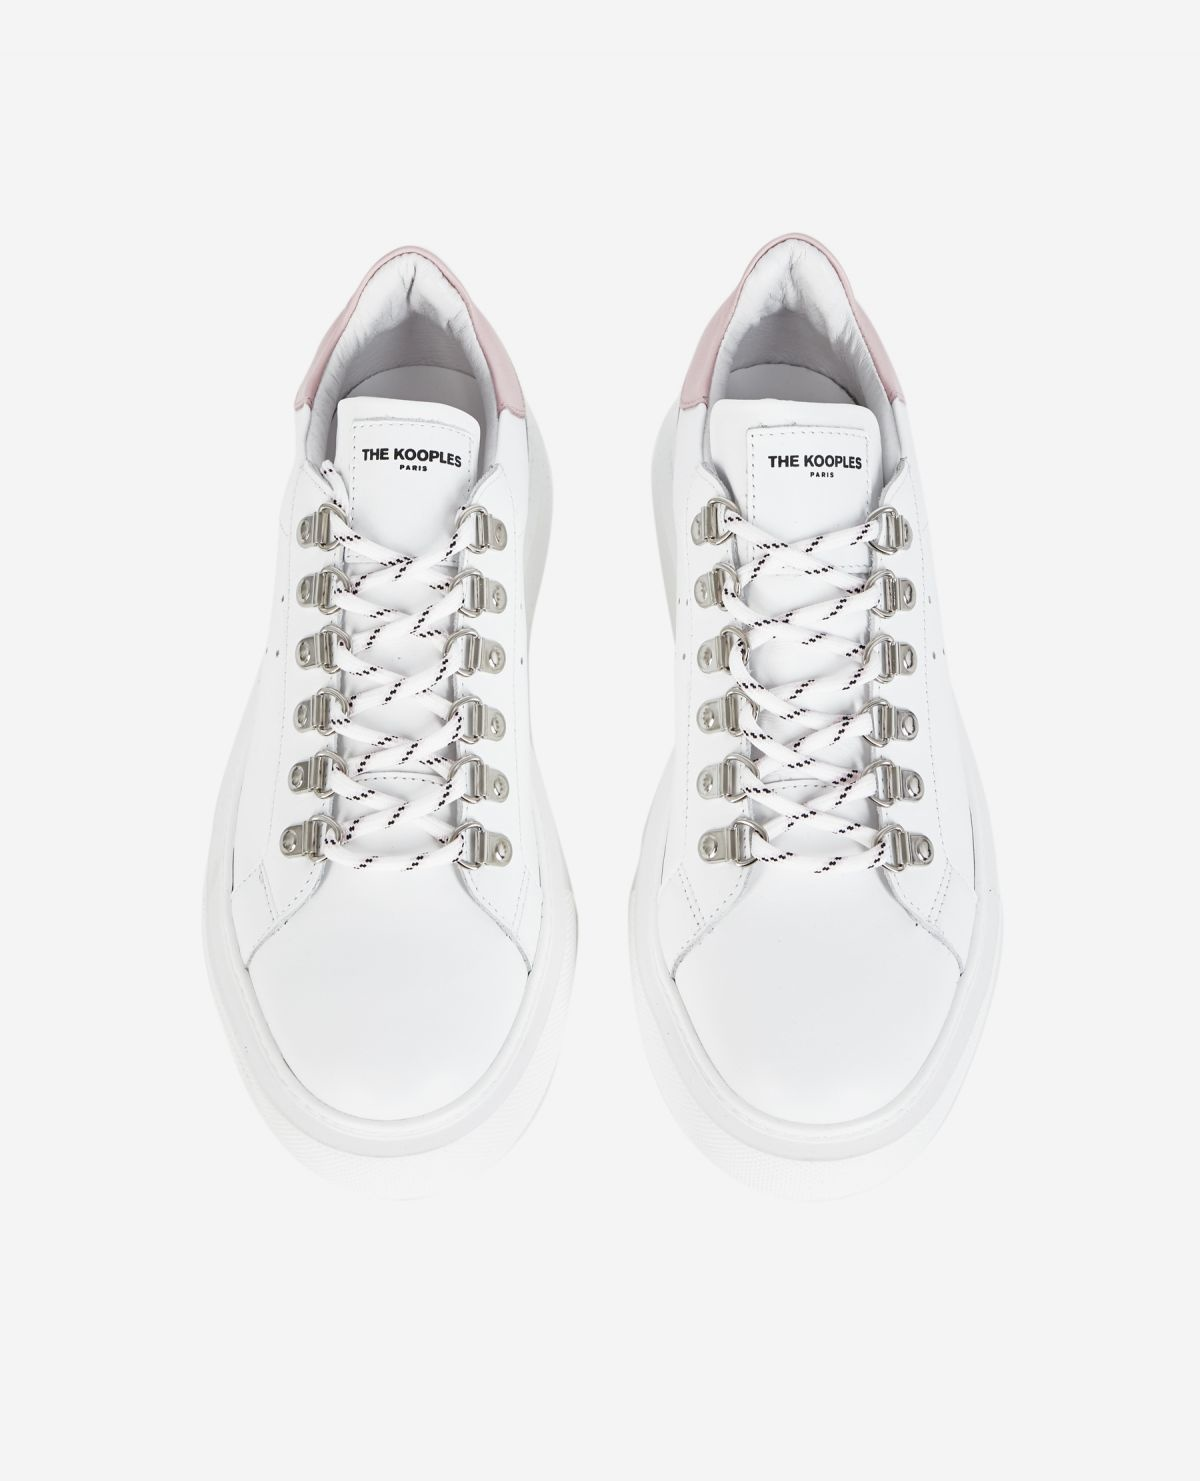 THE KOOPLES  baskets cuir blanches-4